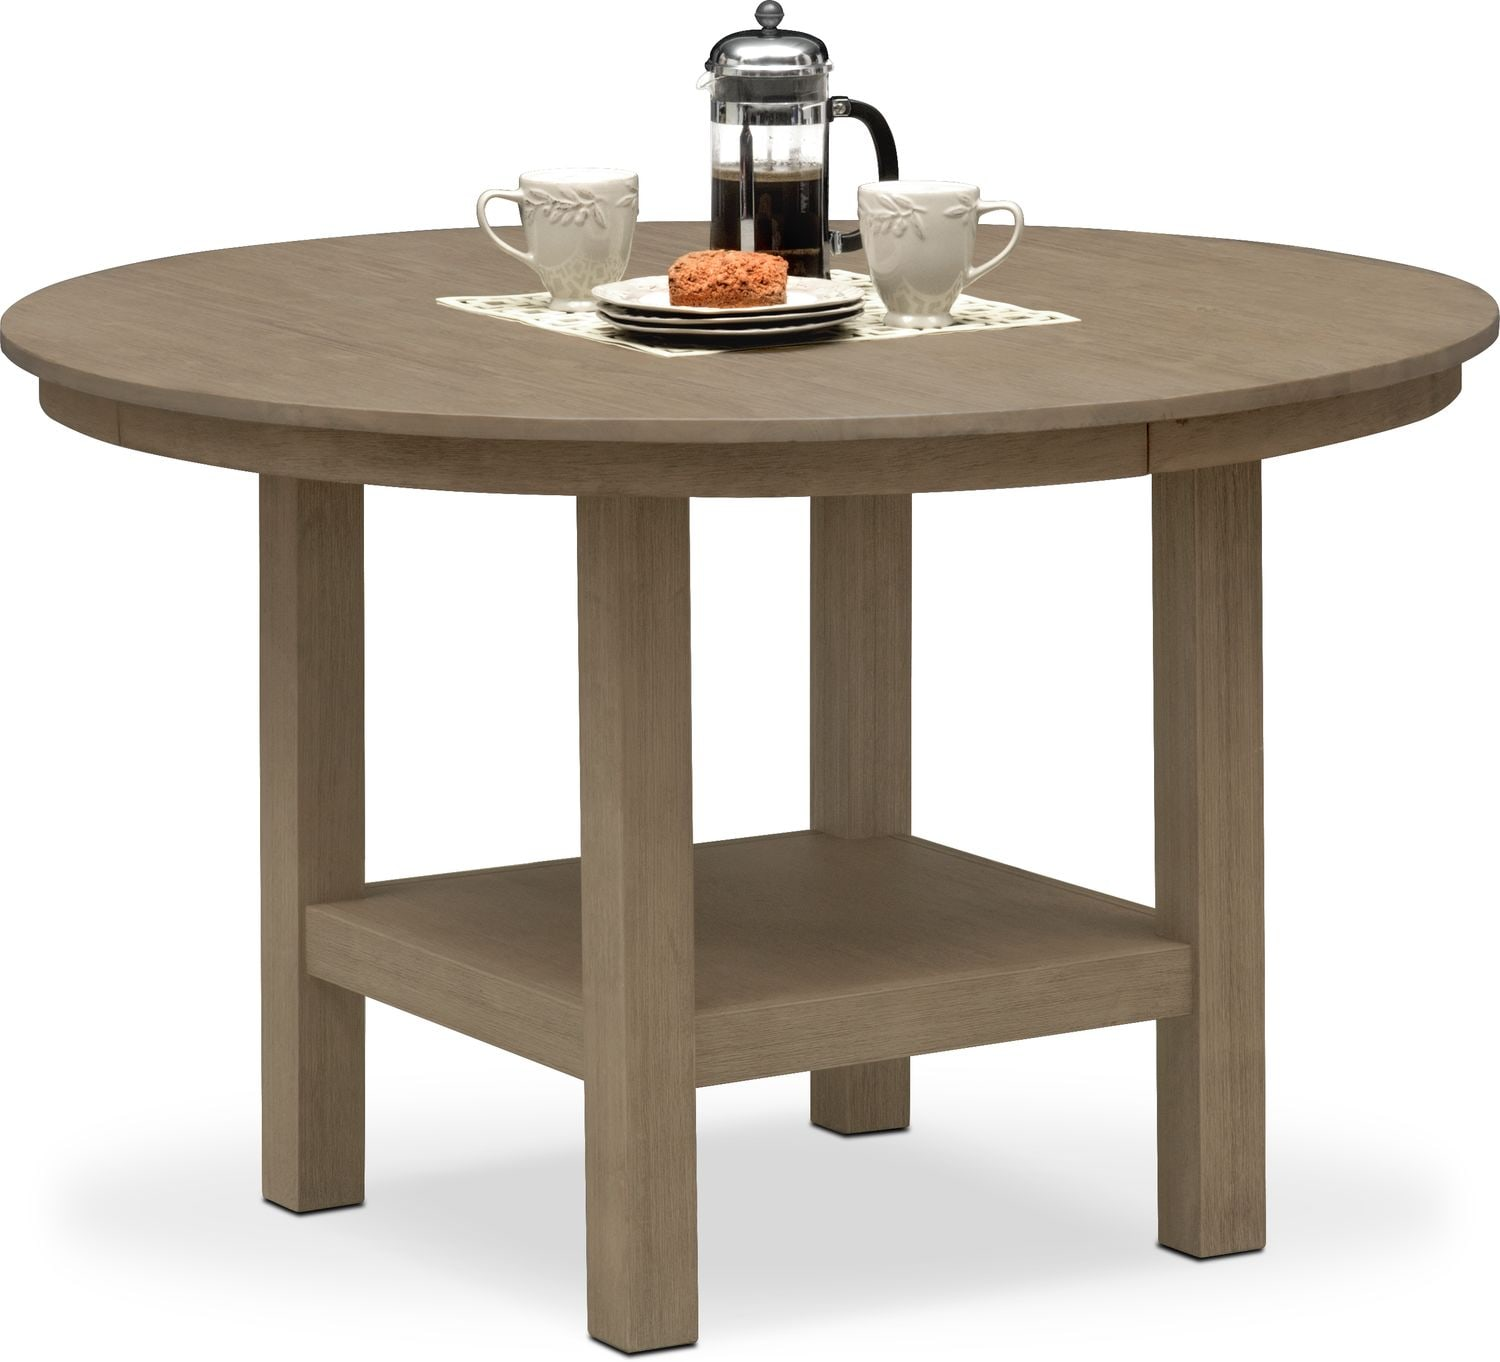 Dining Room Furniture - Tribeca Round Dining Table